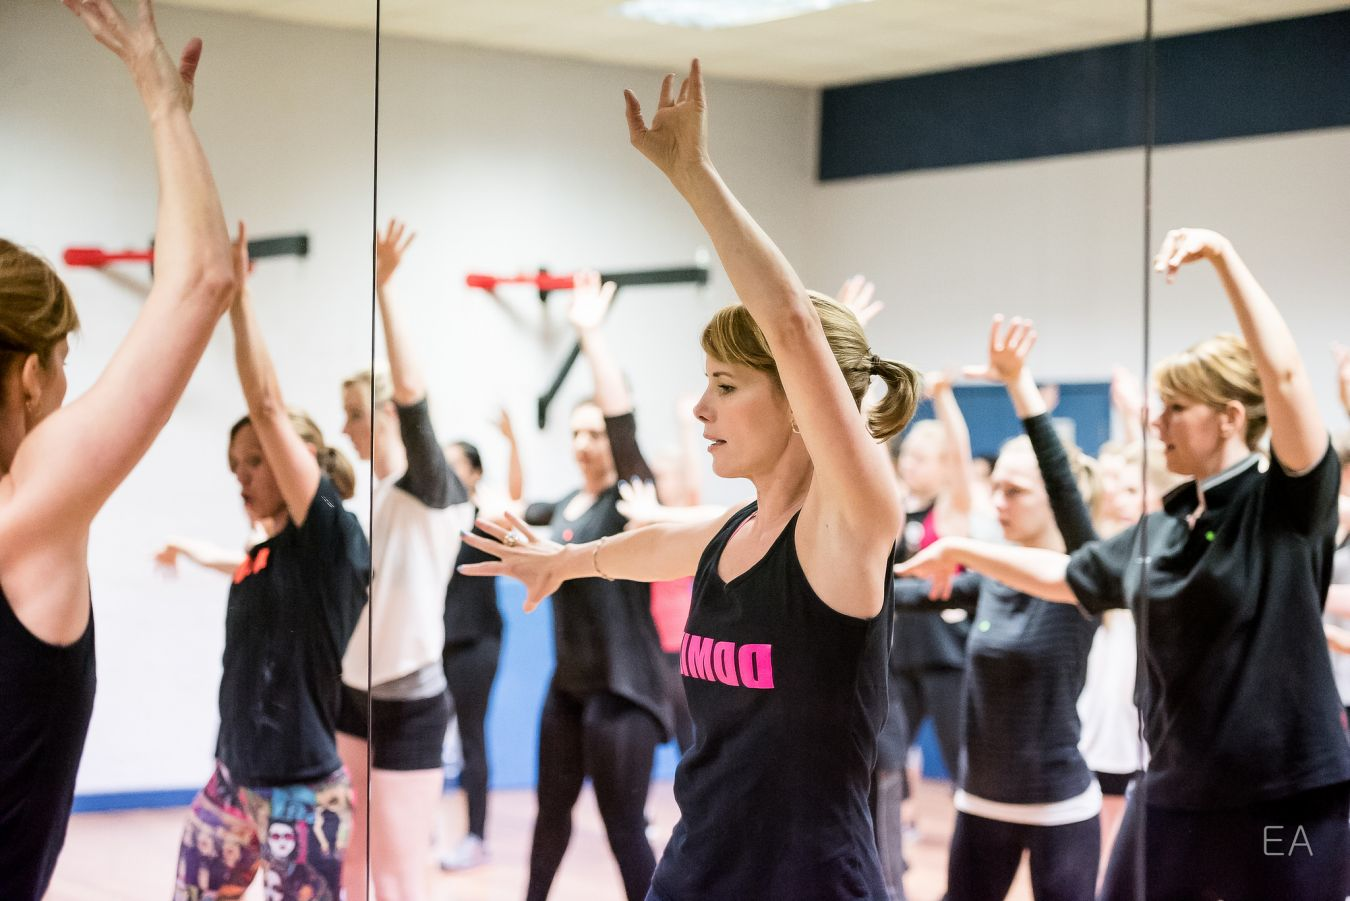 Darcey Bussell took a break from her Strictly Come Dancing judging duties to put Kingston University students through their paces during  an hour-long dance aerobic workout.